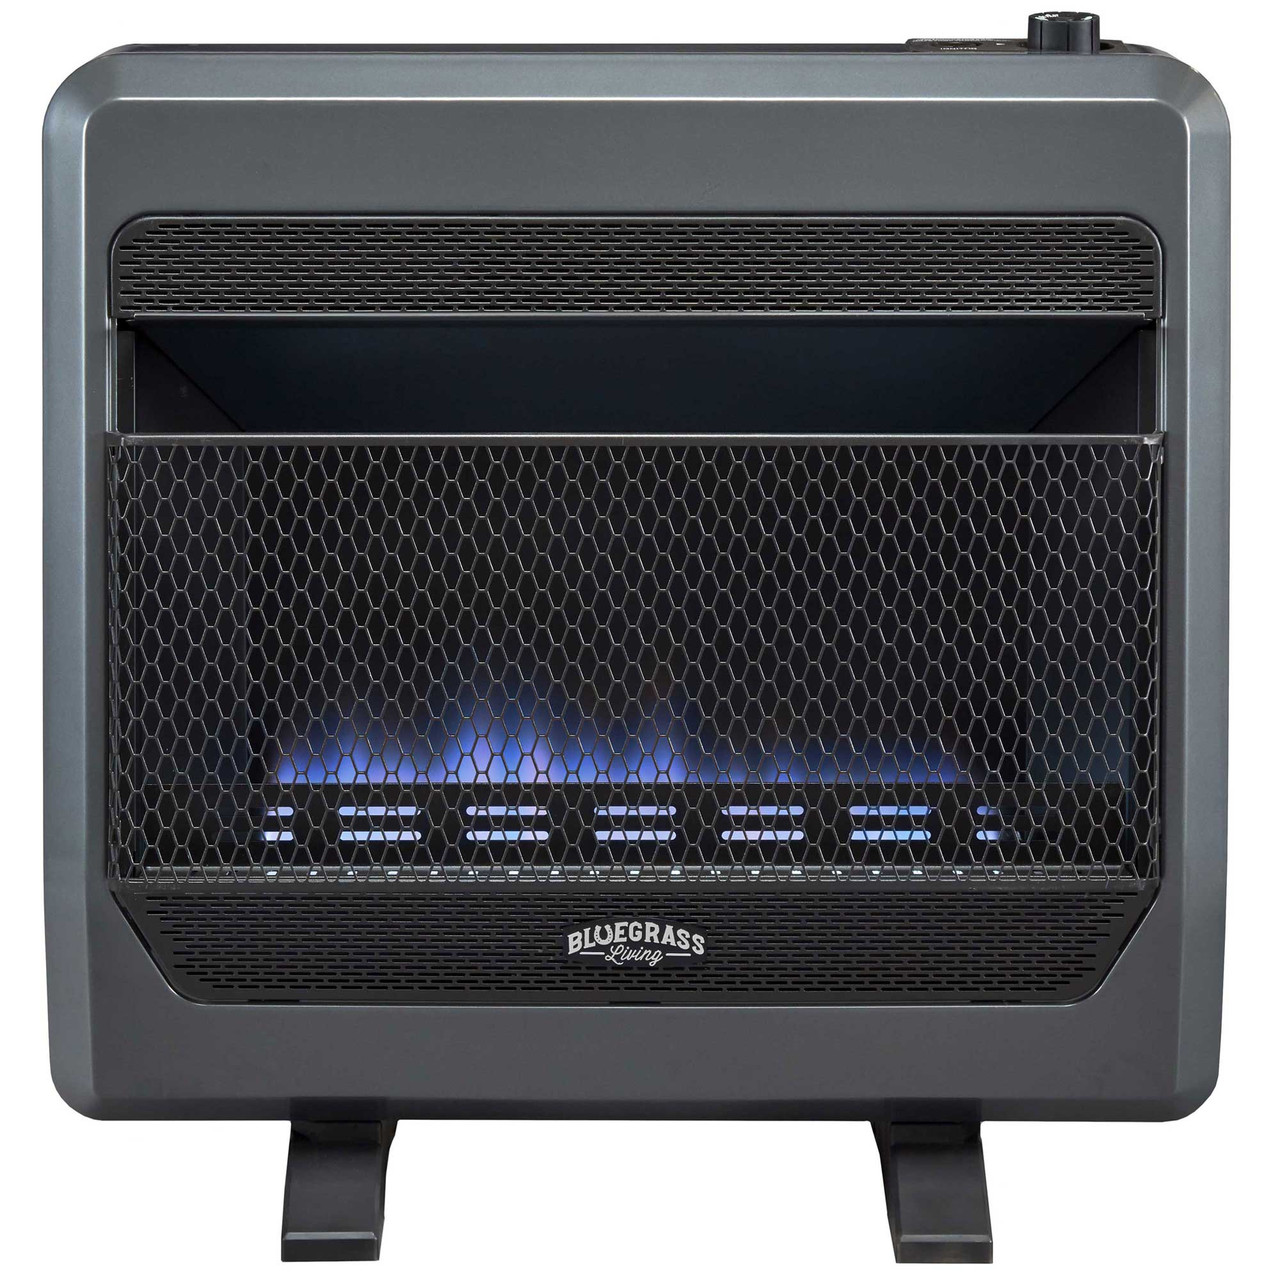 Bluegrass Living Propane Gas Vent Free Blue Flame Gas Space Heater With Blower And Base Feet 30 000 Btu T Stat Control Model B30tpb Bb Factory Buys Direct